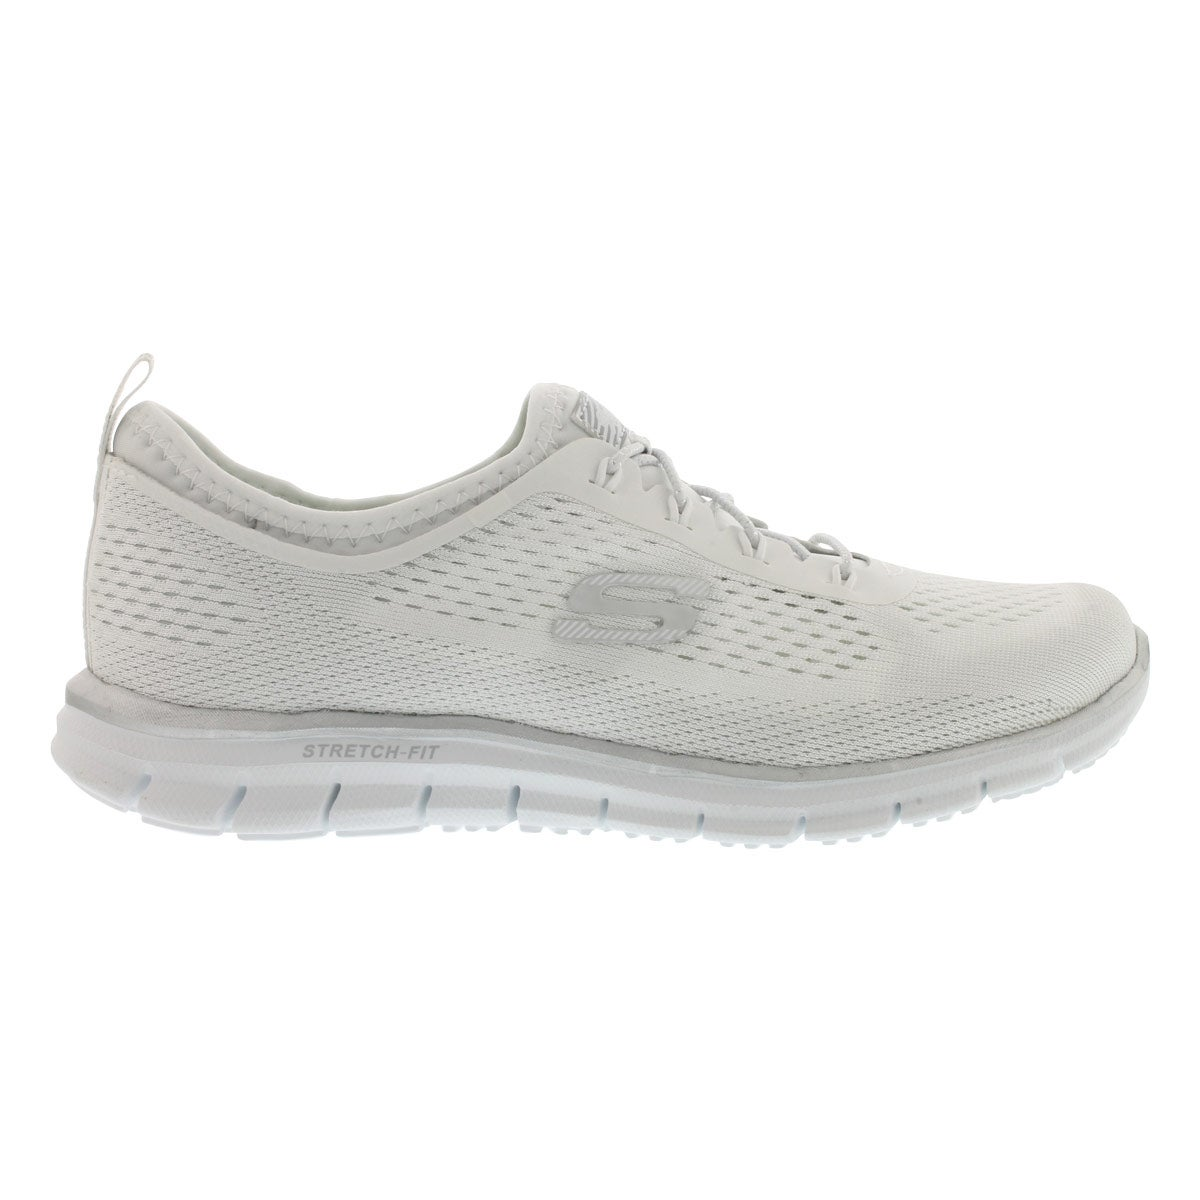 Lds Harmony white/silver bungee sneaker